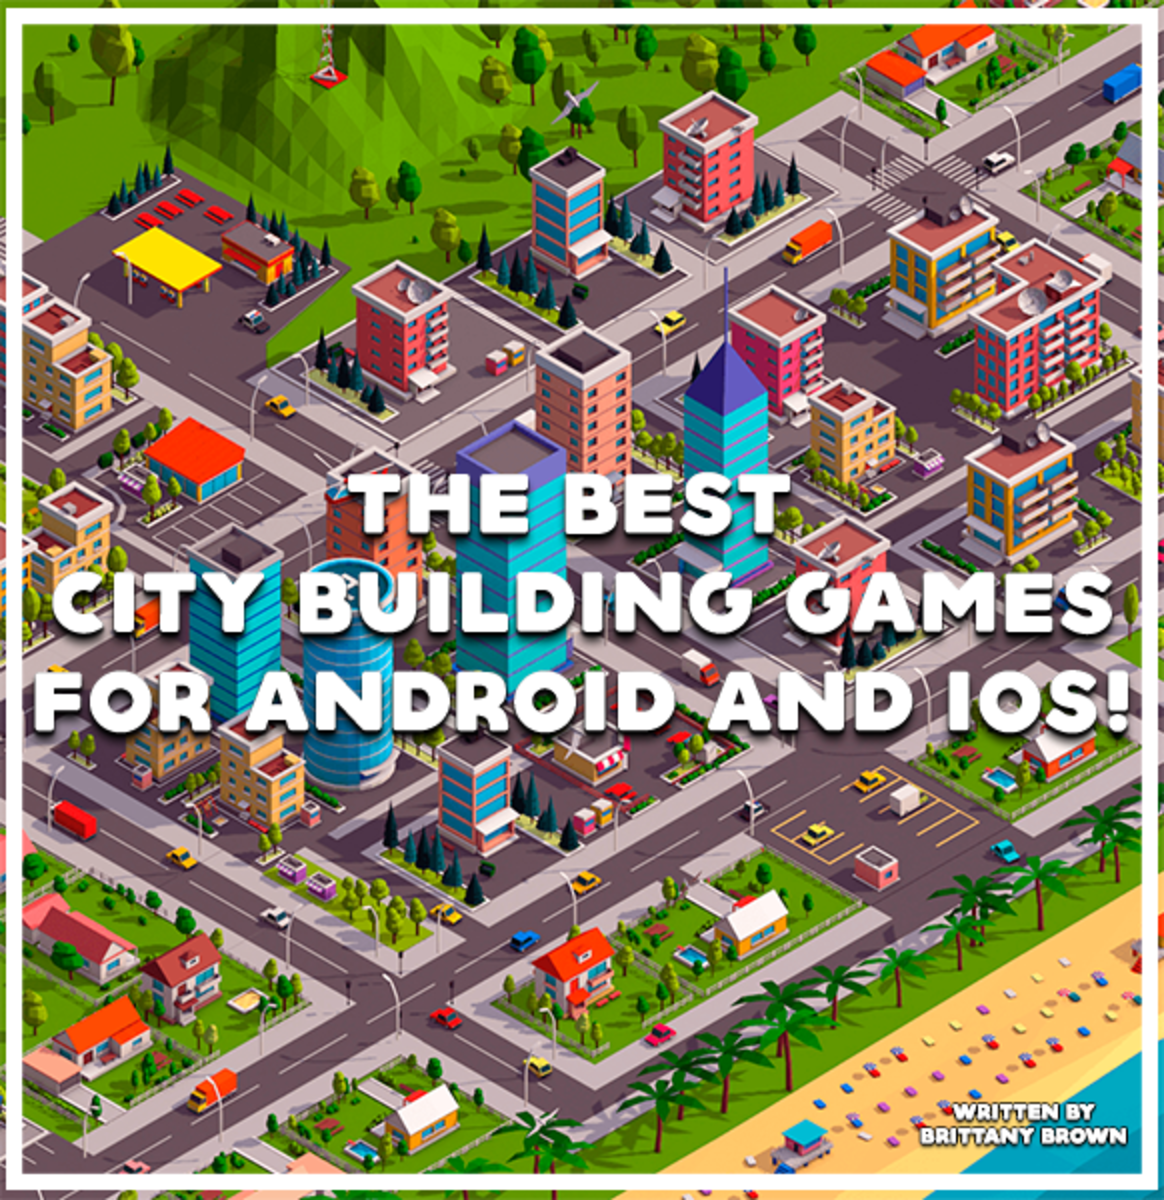 The best free city-building games for Android and iOS devices!